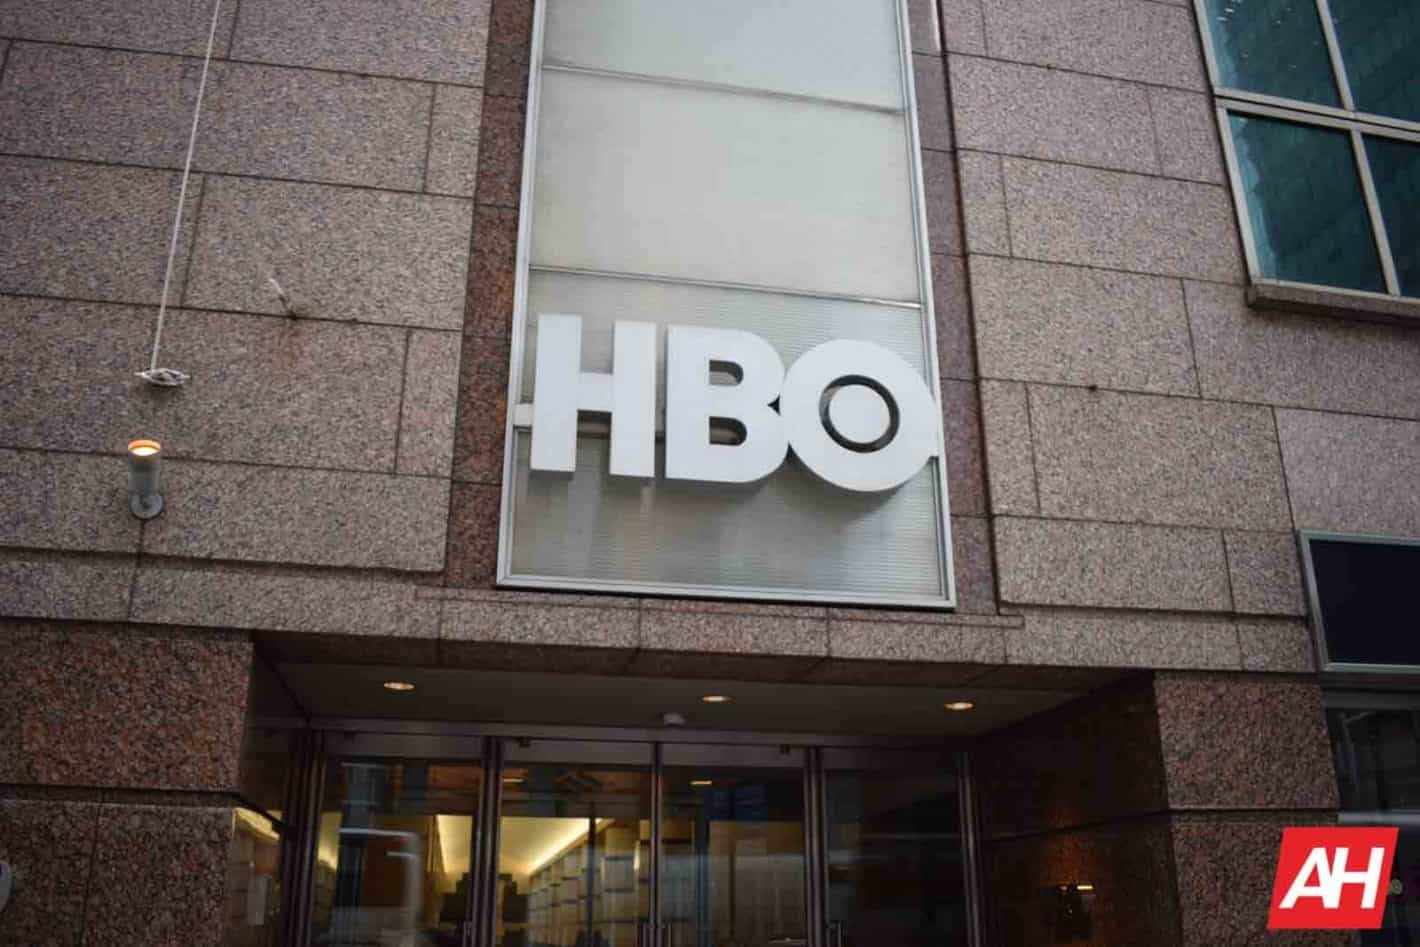 HBO Go or HBO Max: What's the Difference Between the Two?